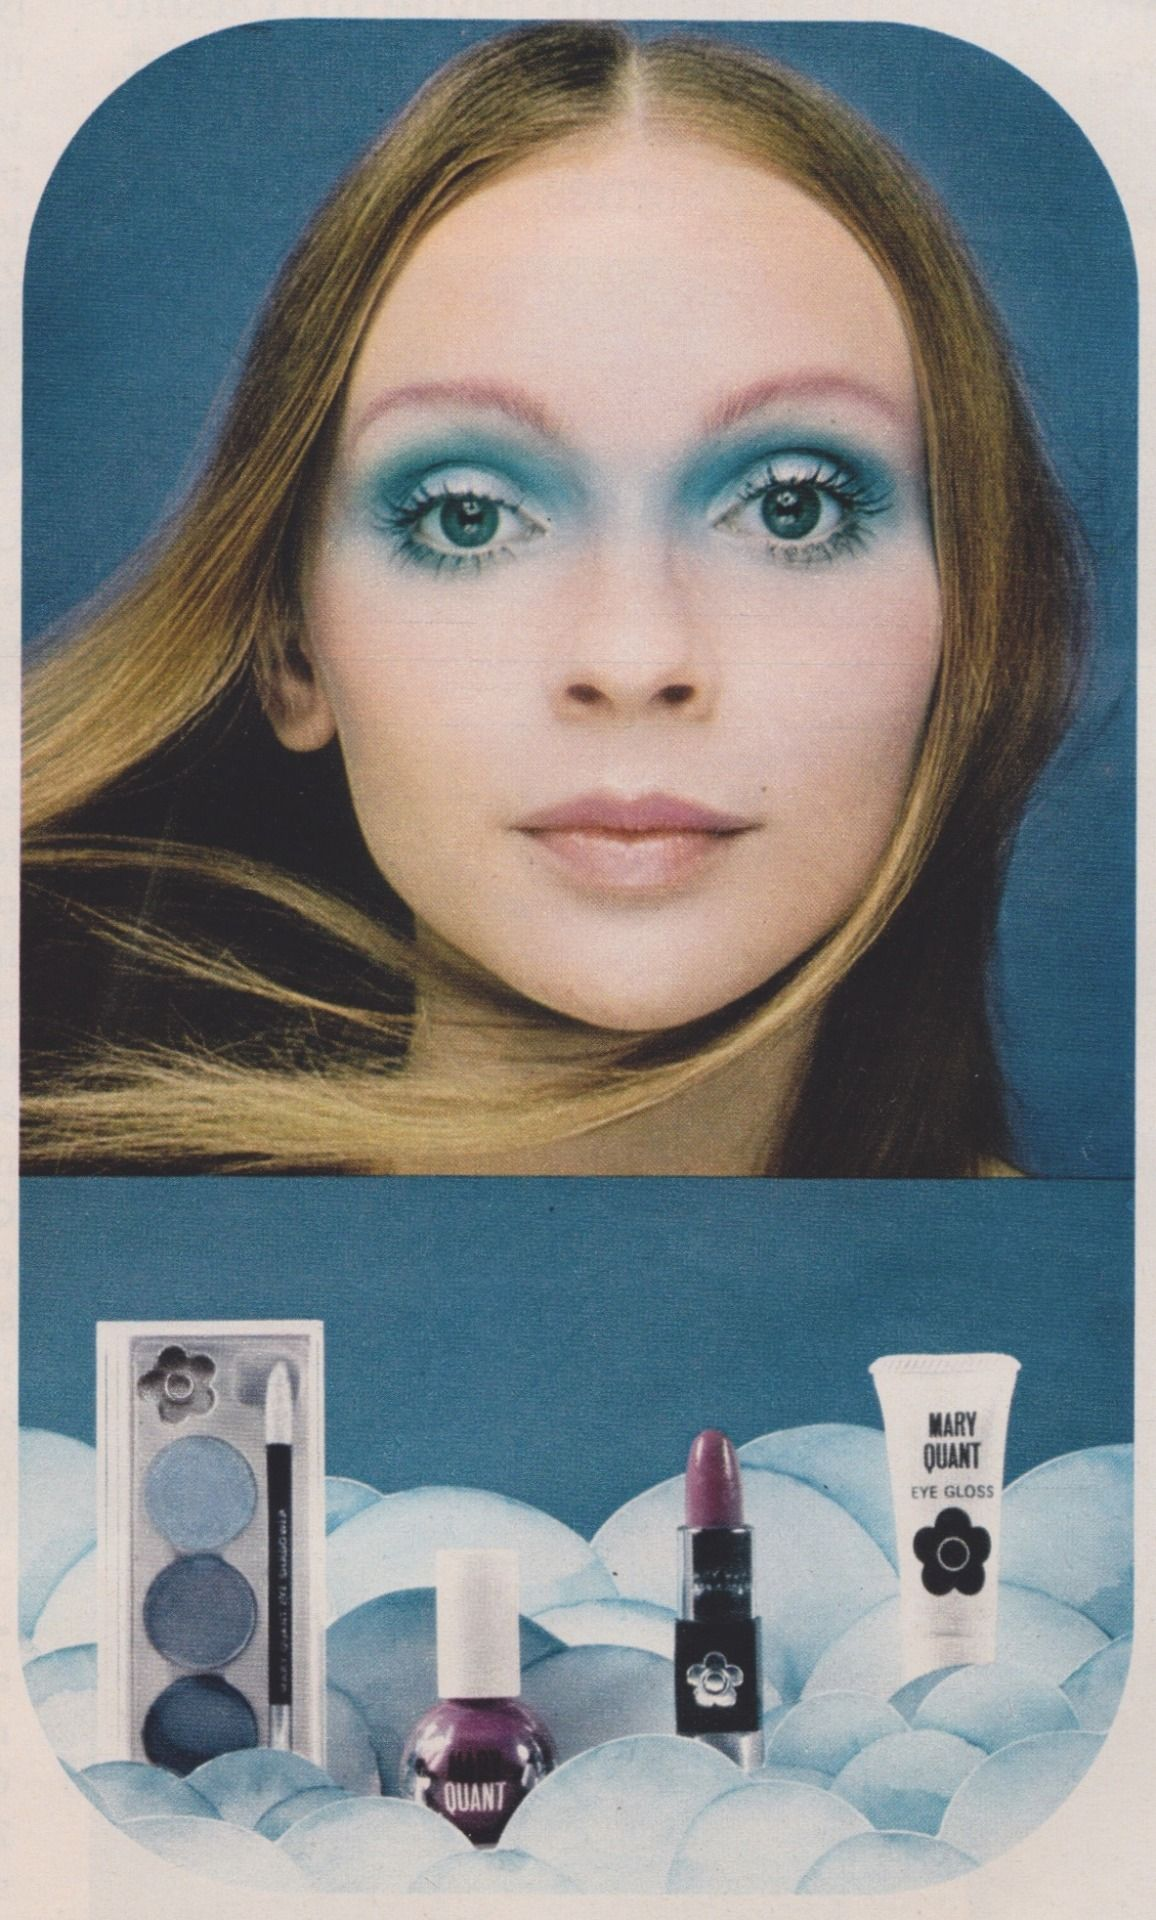 Hair Beauty Adverts From The 1970s